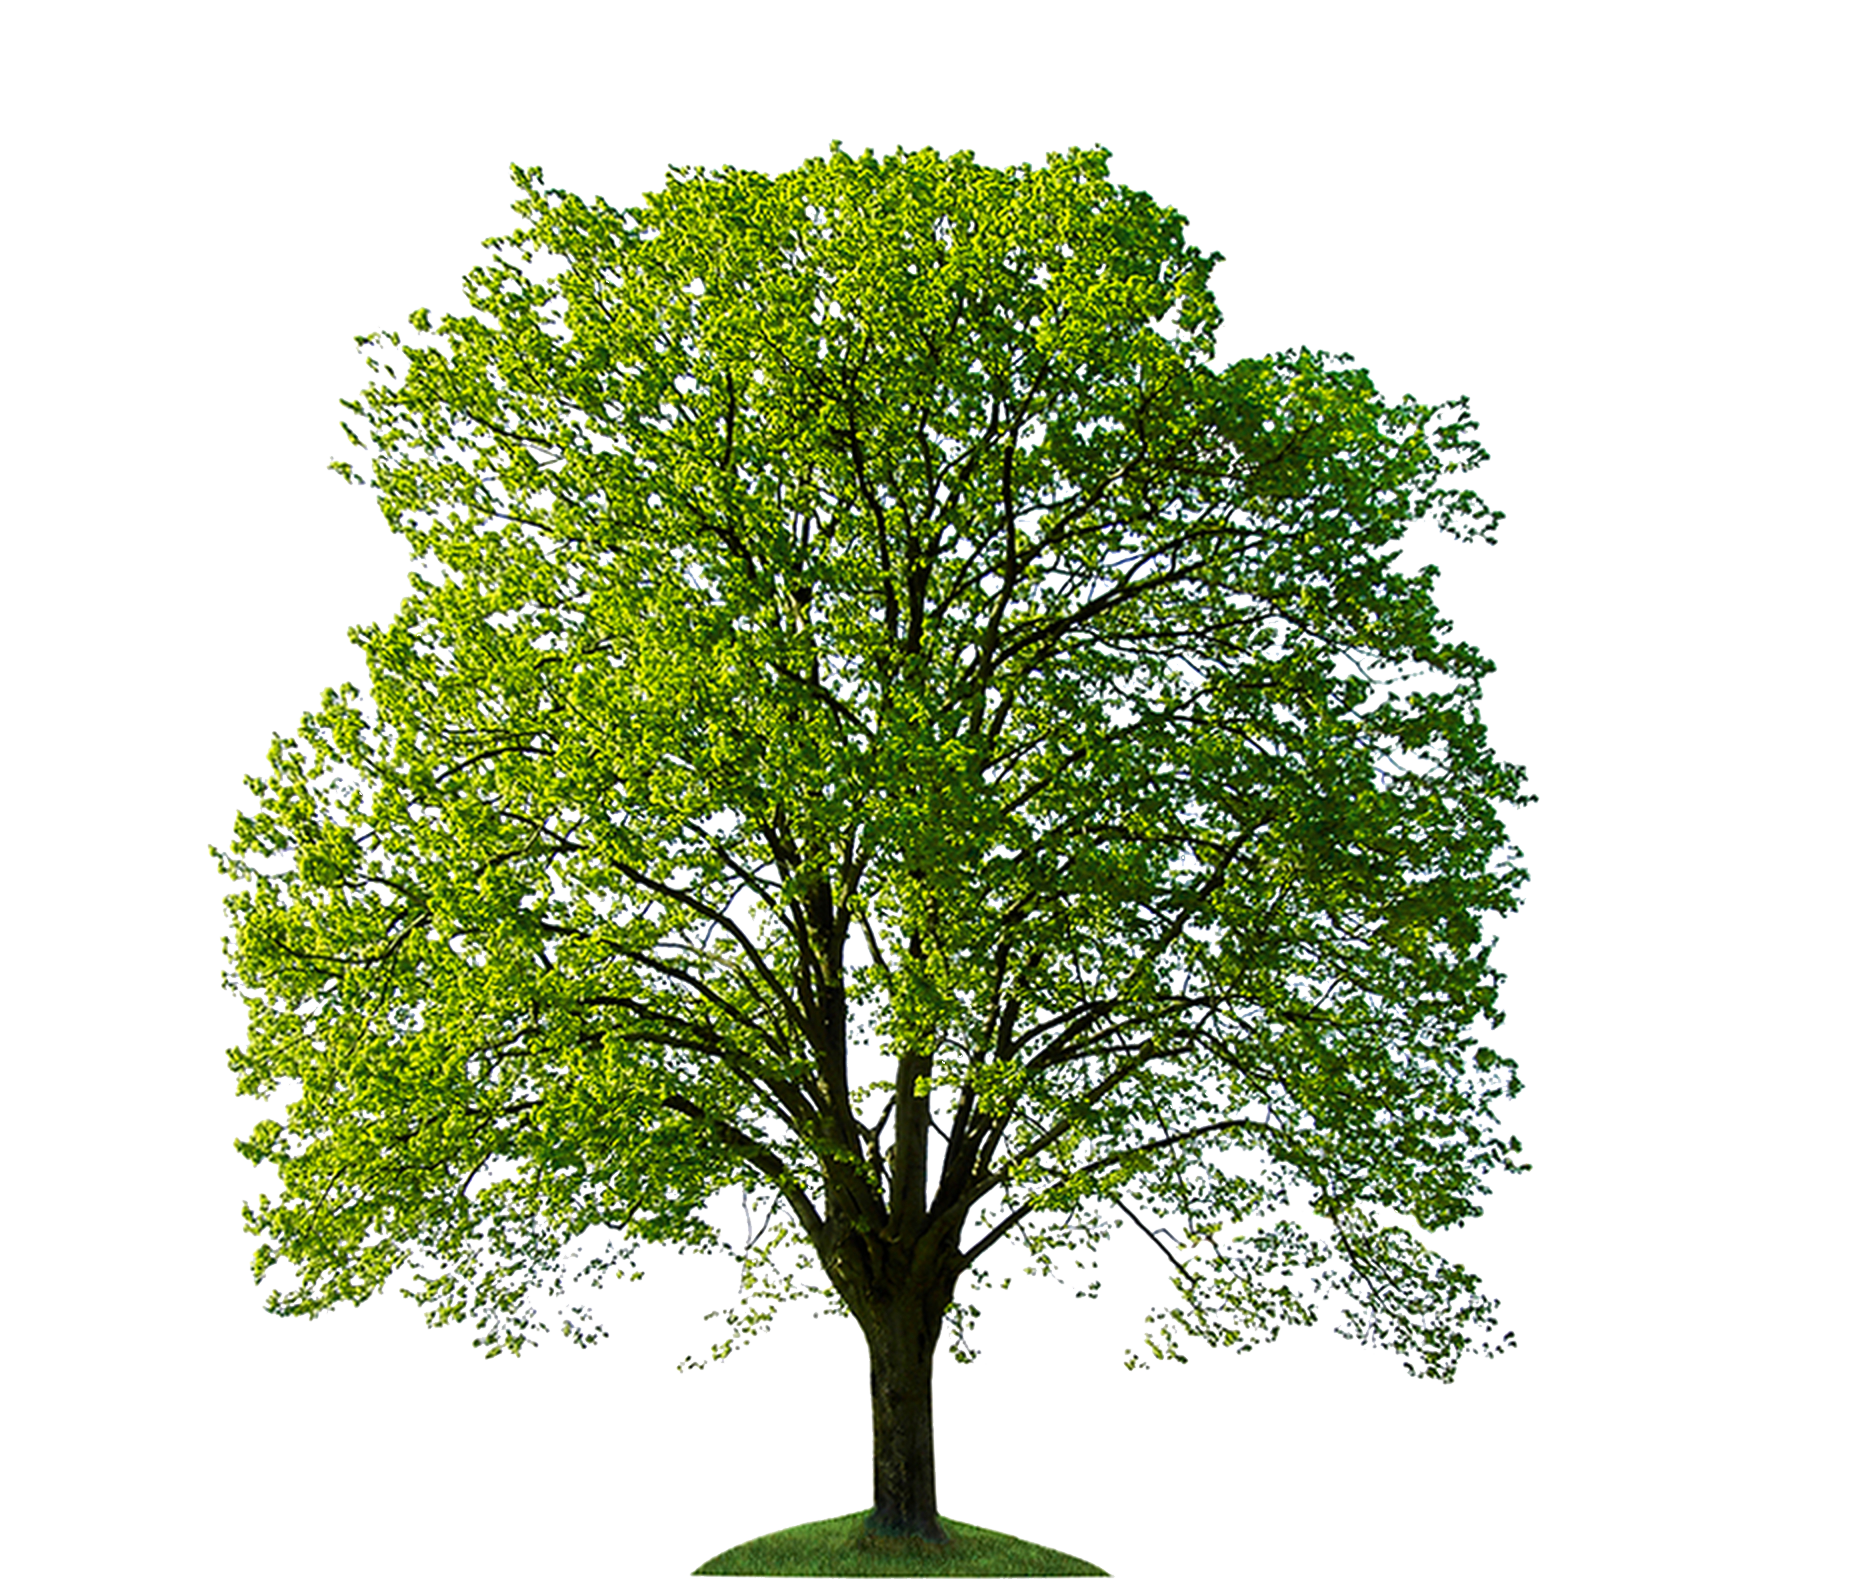 tree - Google Search | Trees | Pinterest for Park Tree Png  177nar